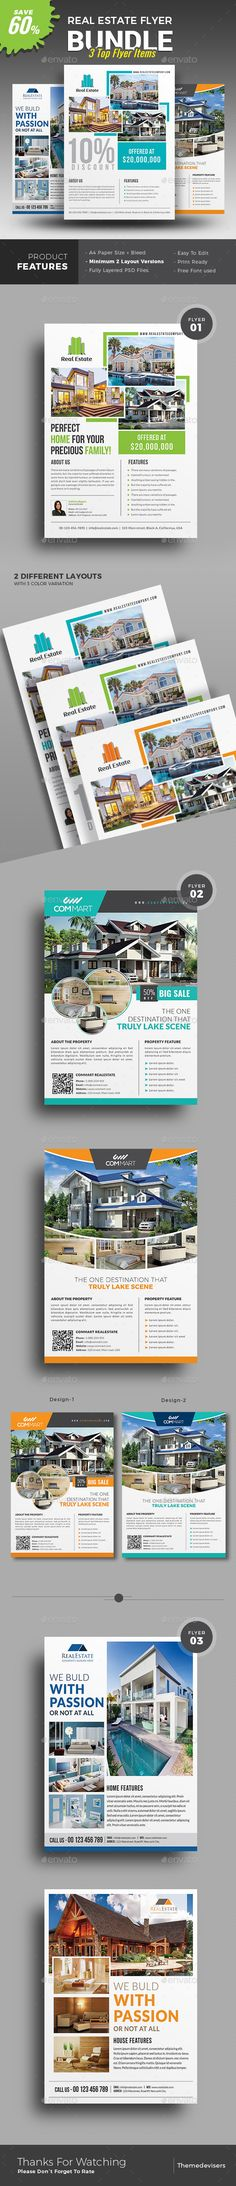 #Real #Estate #Flyer - Commerce Flyers Download here:  https://graphicriver.net/item/real-estate-flyer/19551505?ref=alena994